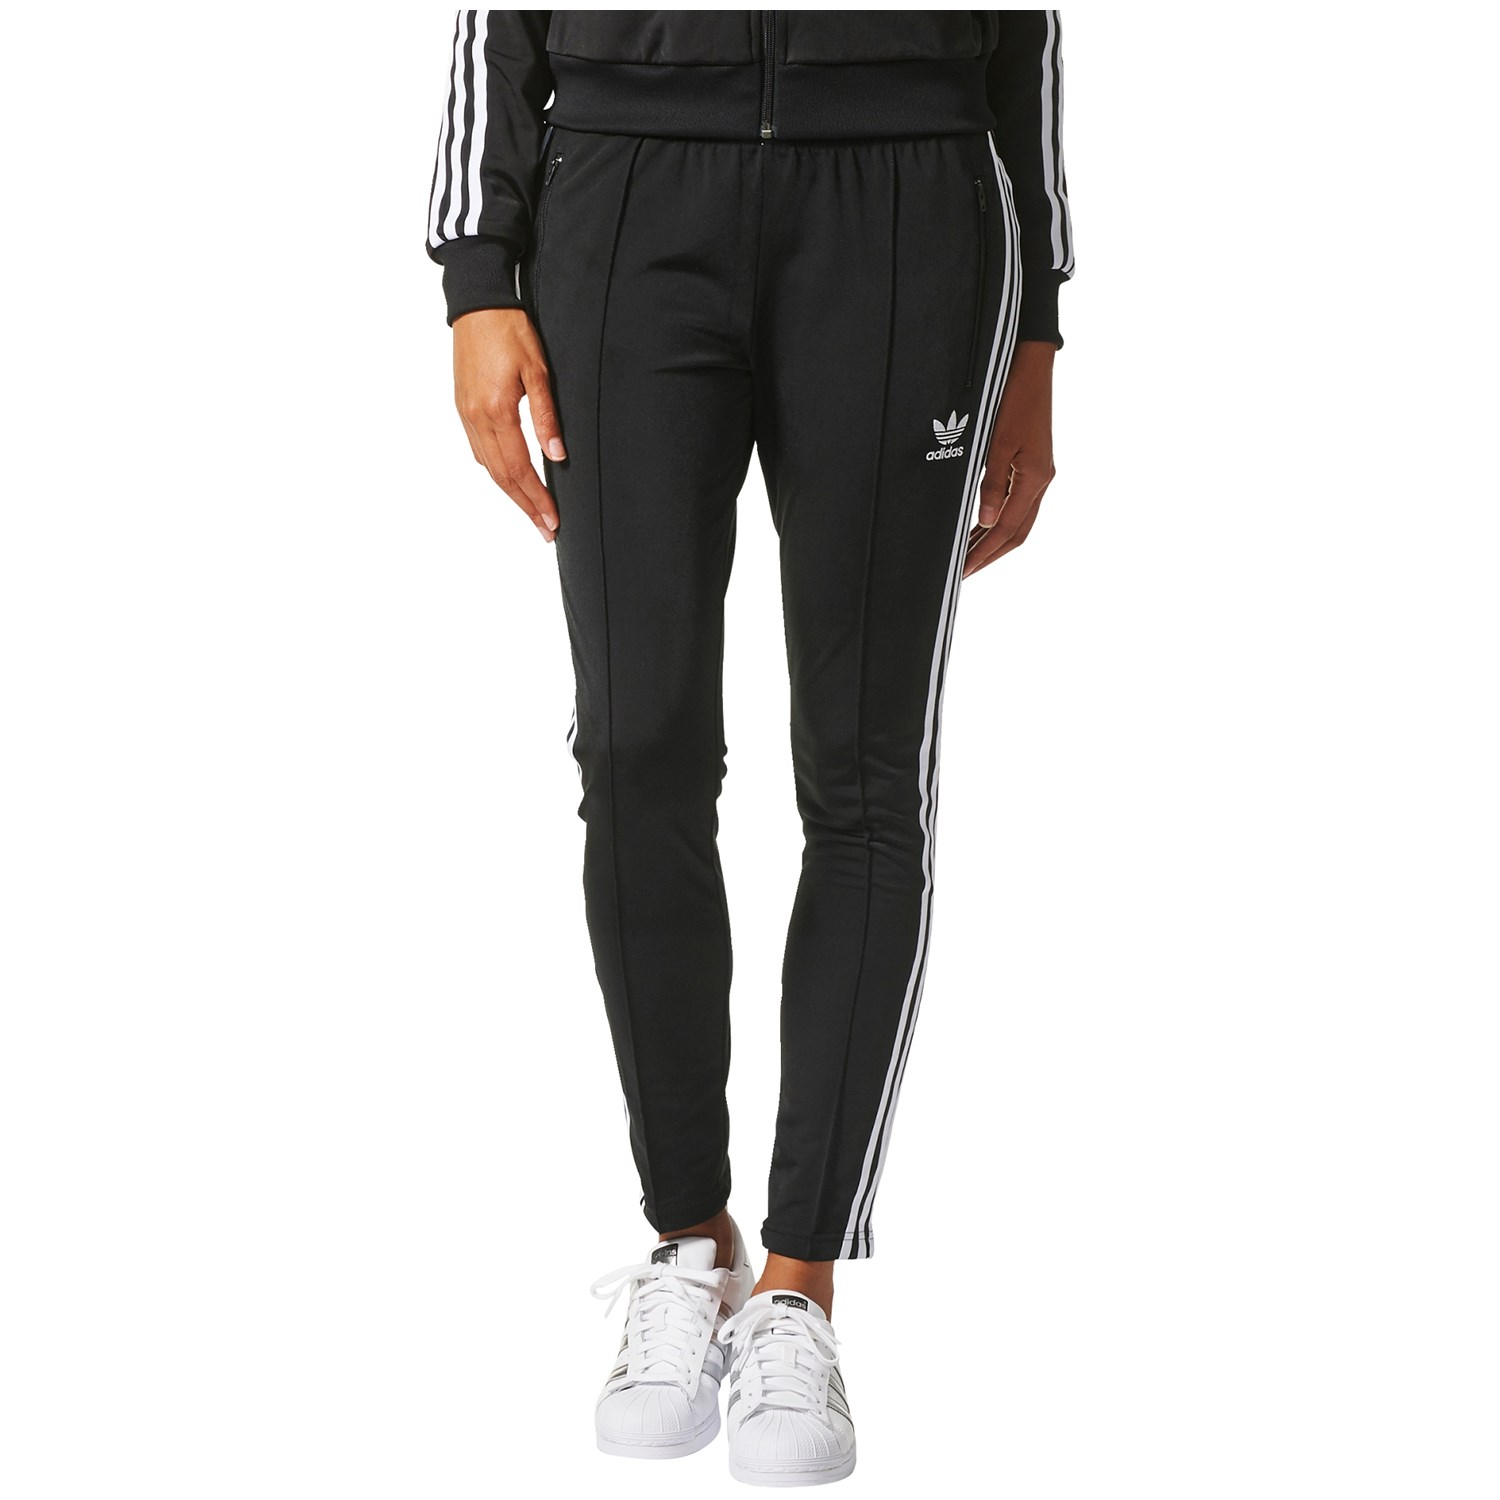 ba0ecb57e25 Adidas Originals Superstar Track Pants Women's 2018 | FREESKIER